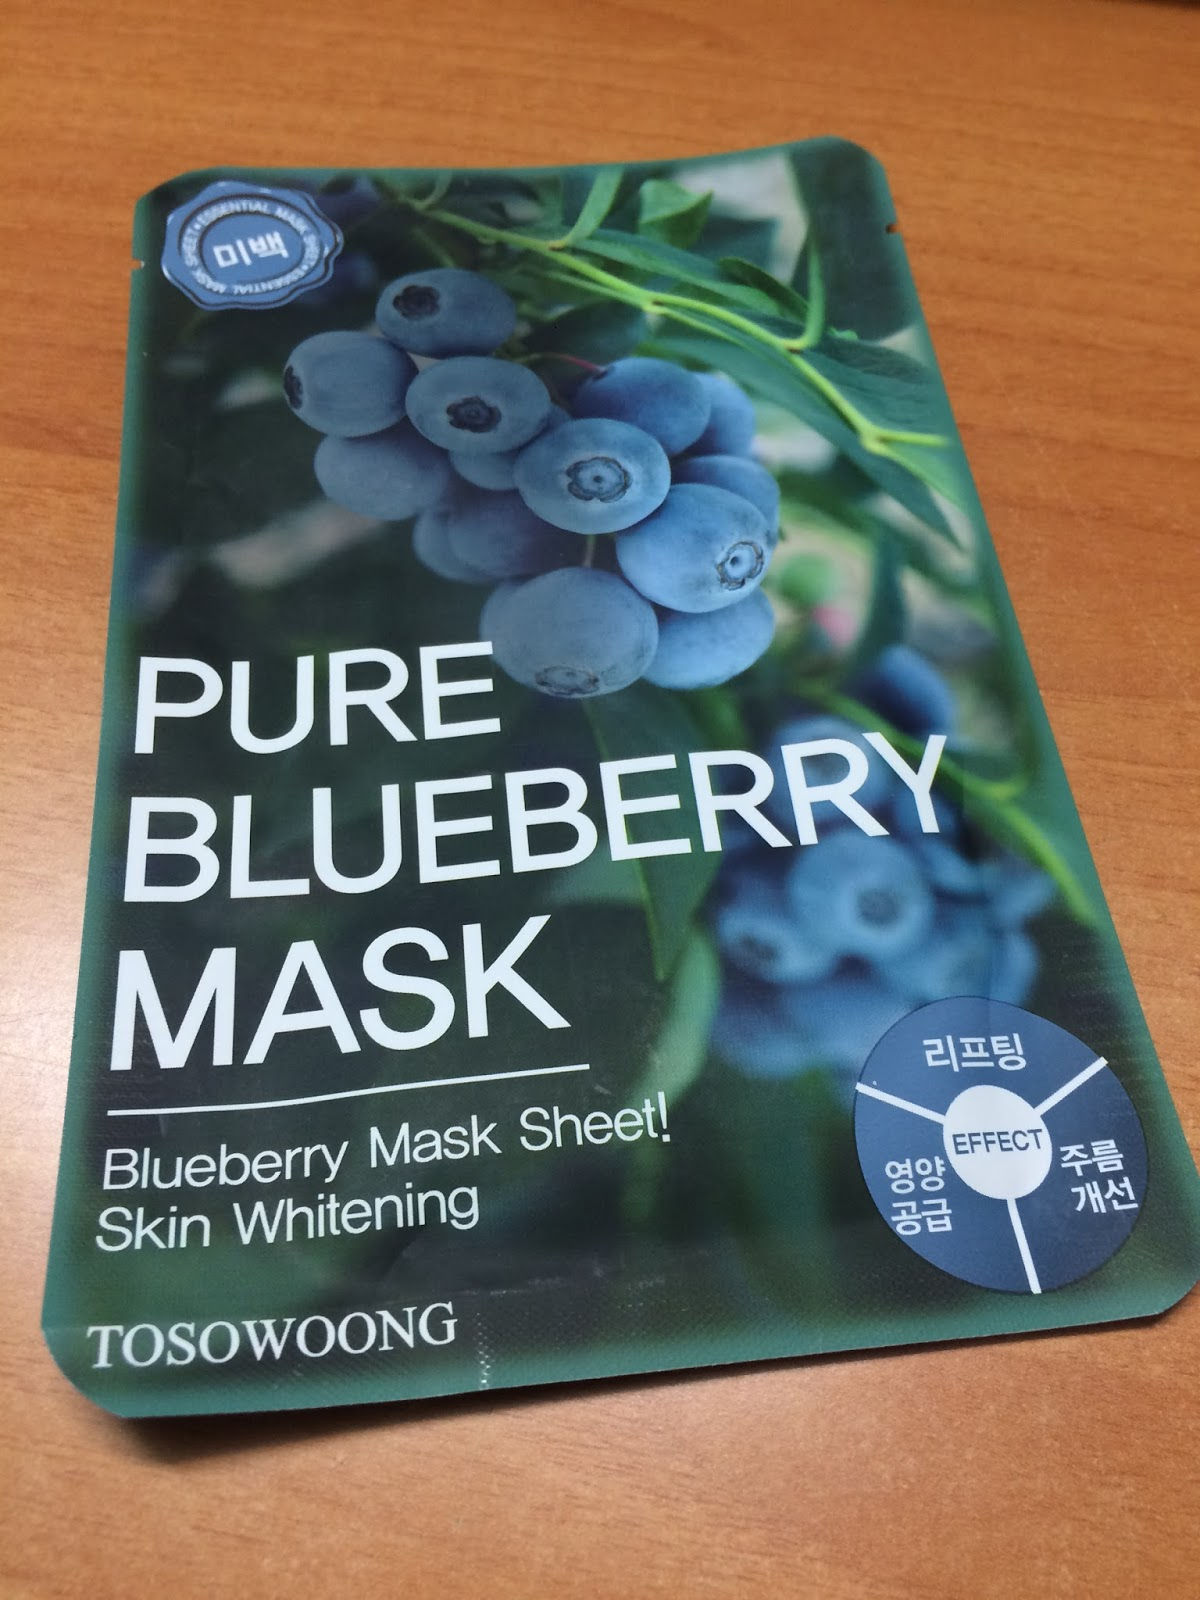 tosowoong blueberry mask